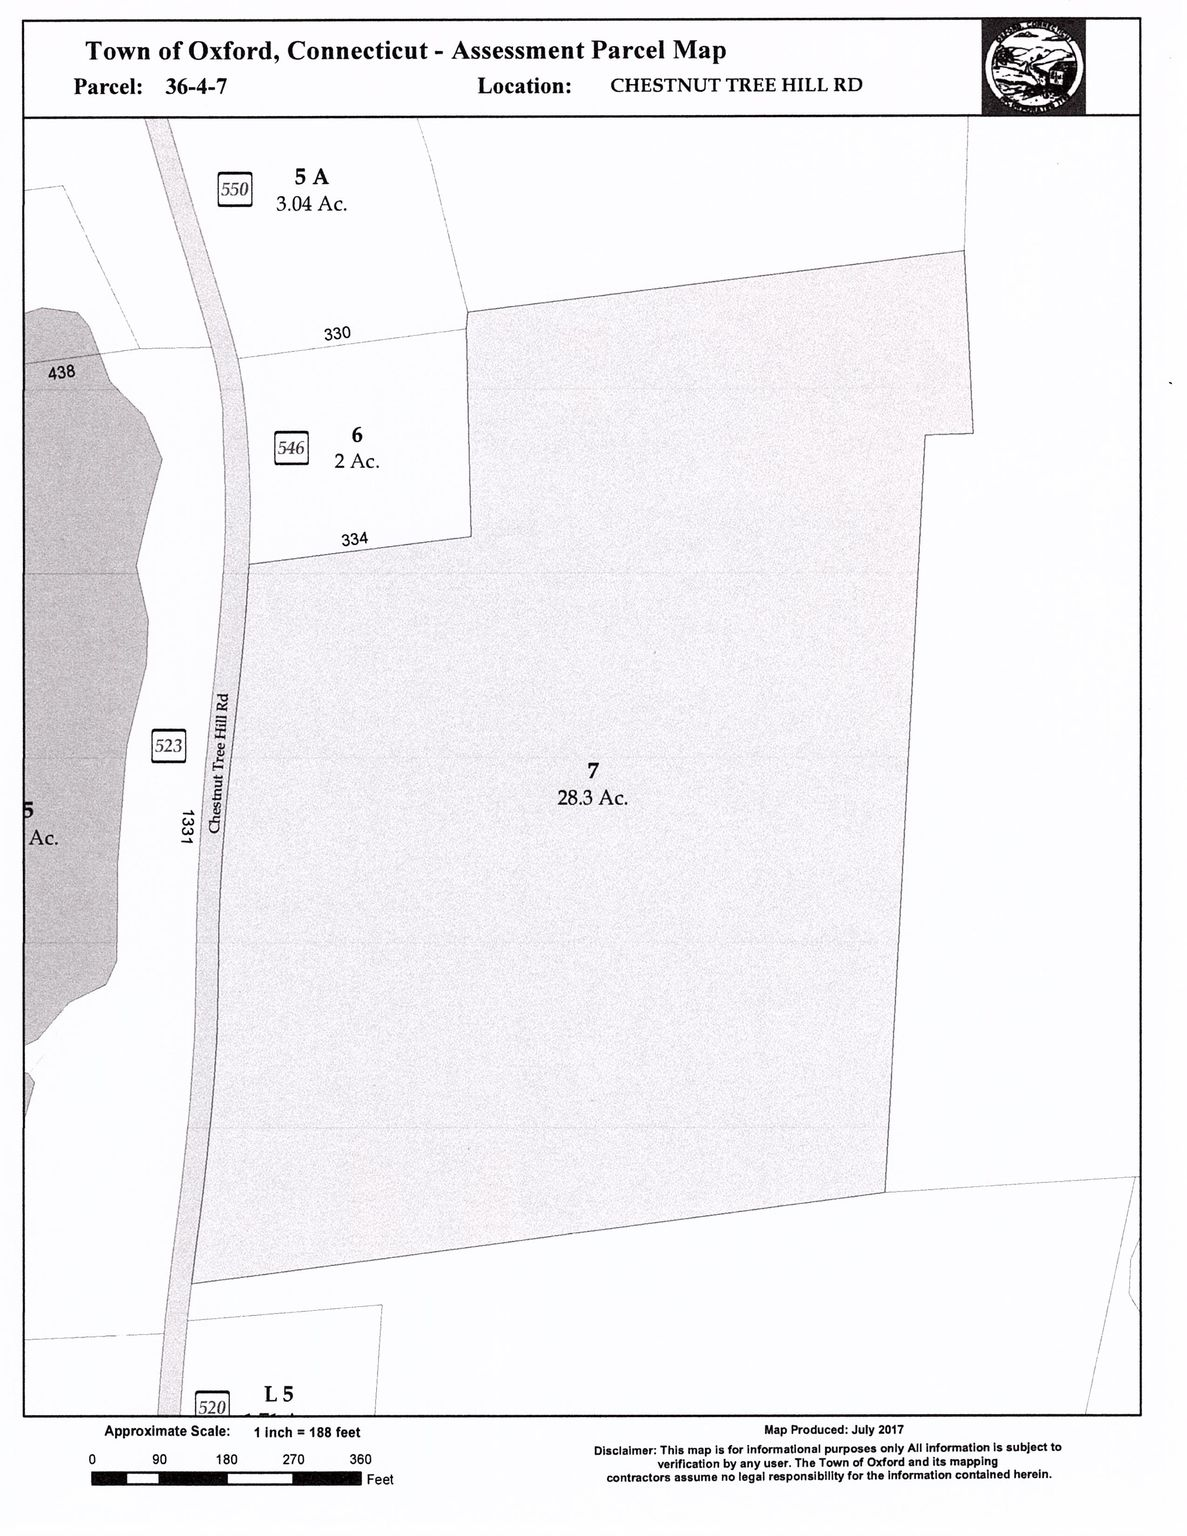 Chestnut Tree Hill Road Map 36 #4-7, Oxford, CT 06478 - Lot/Land ...